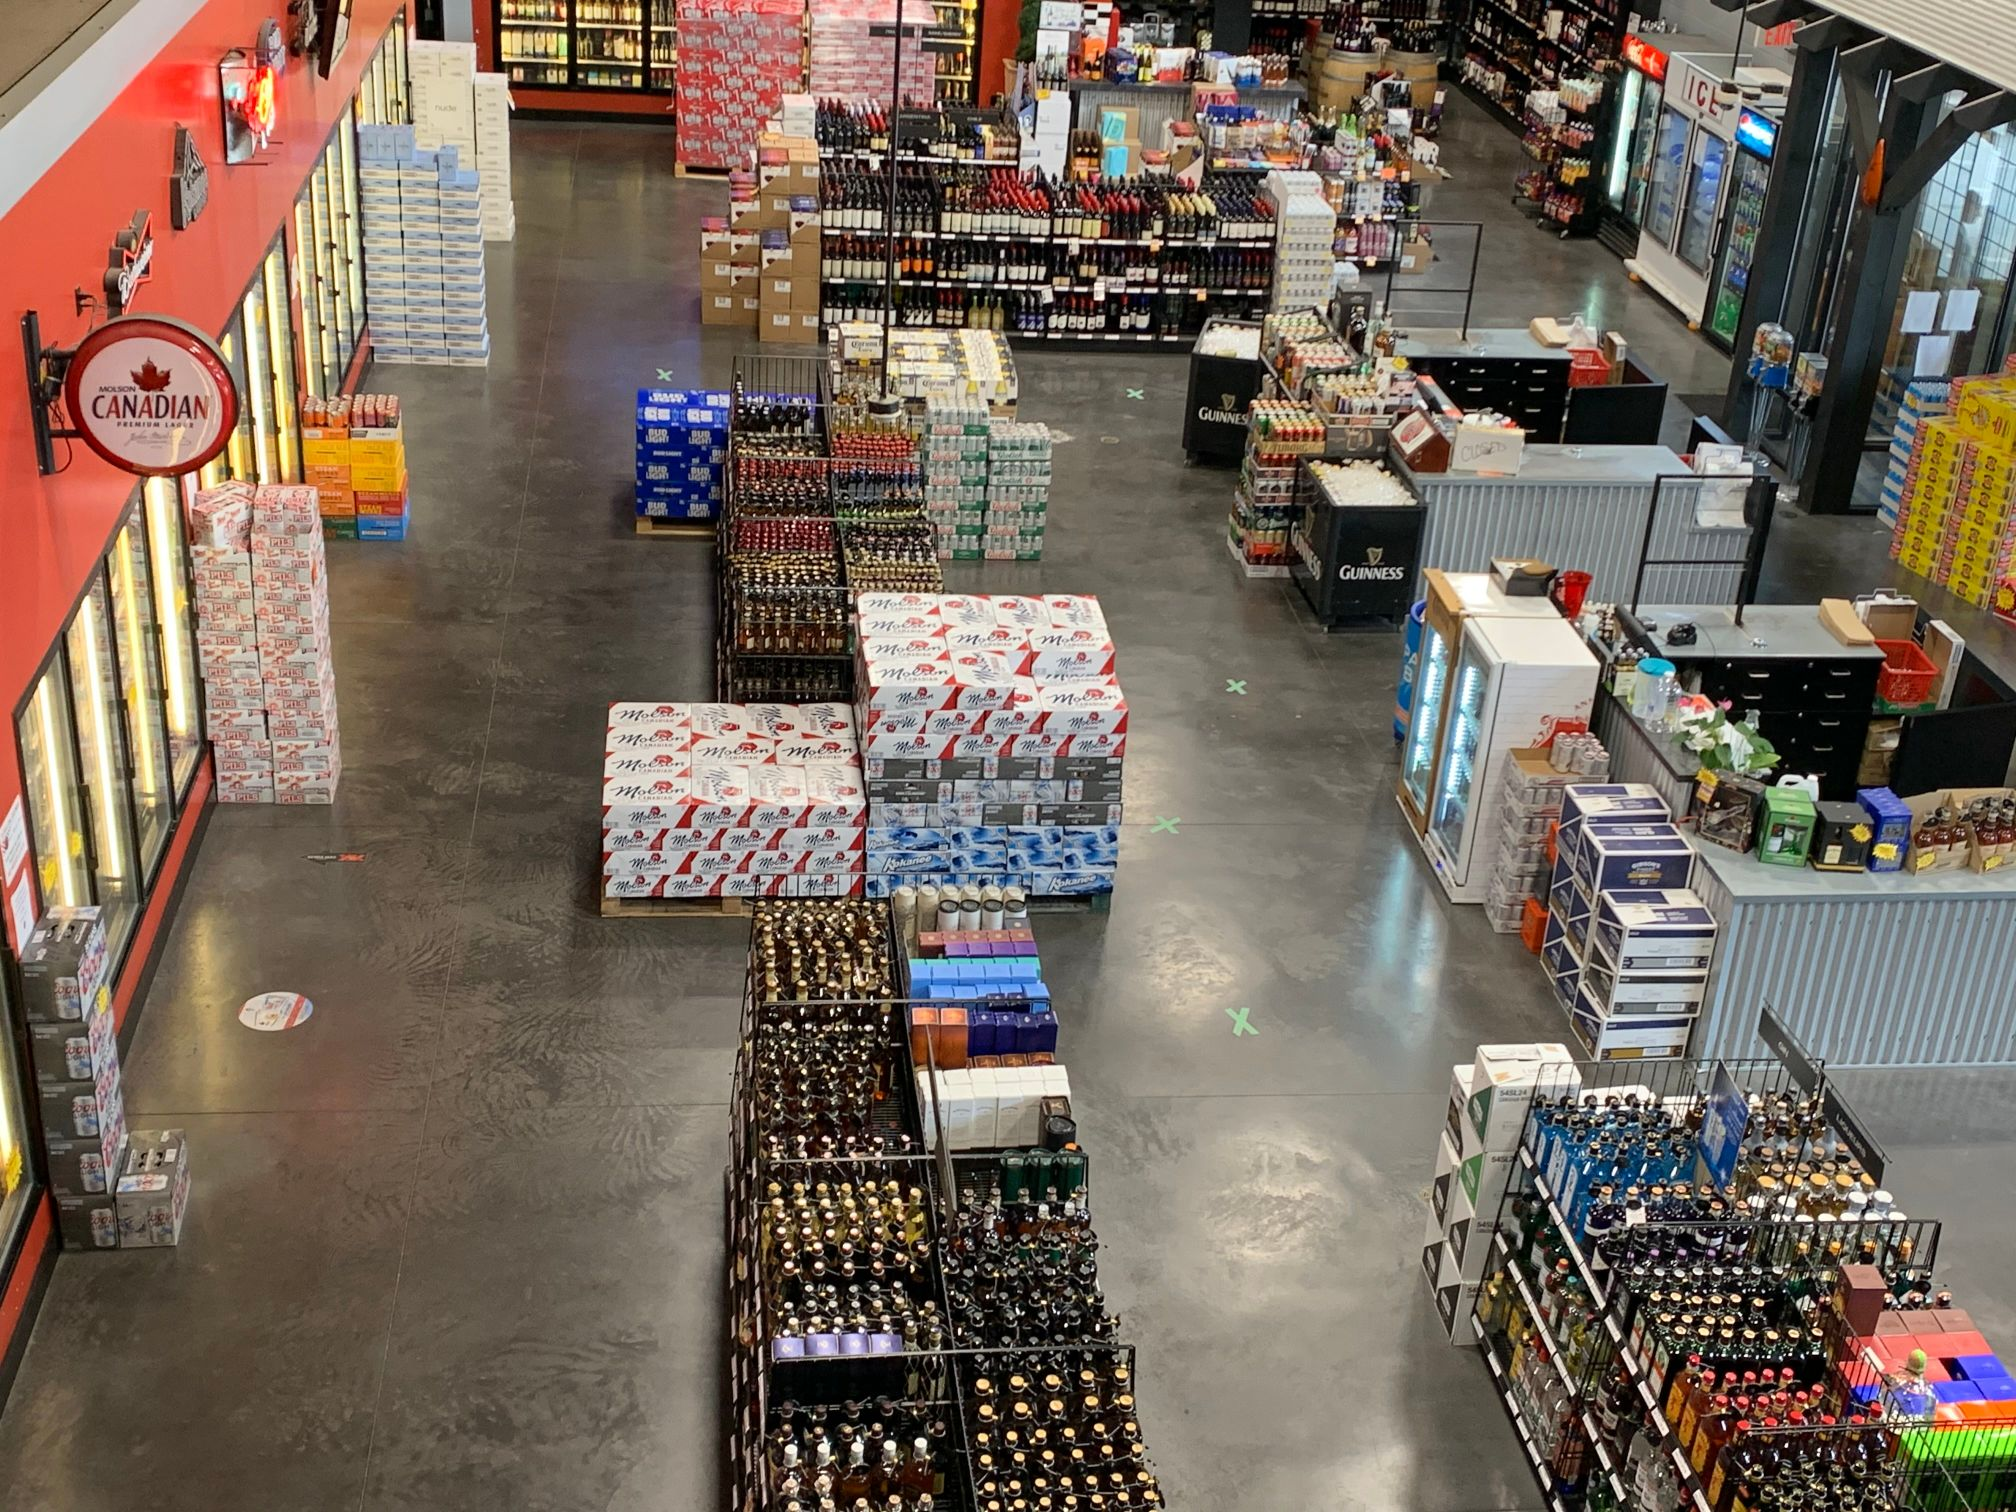 Top view of the Riders Liquor Store interior